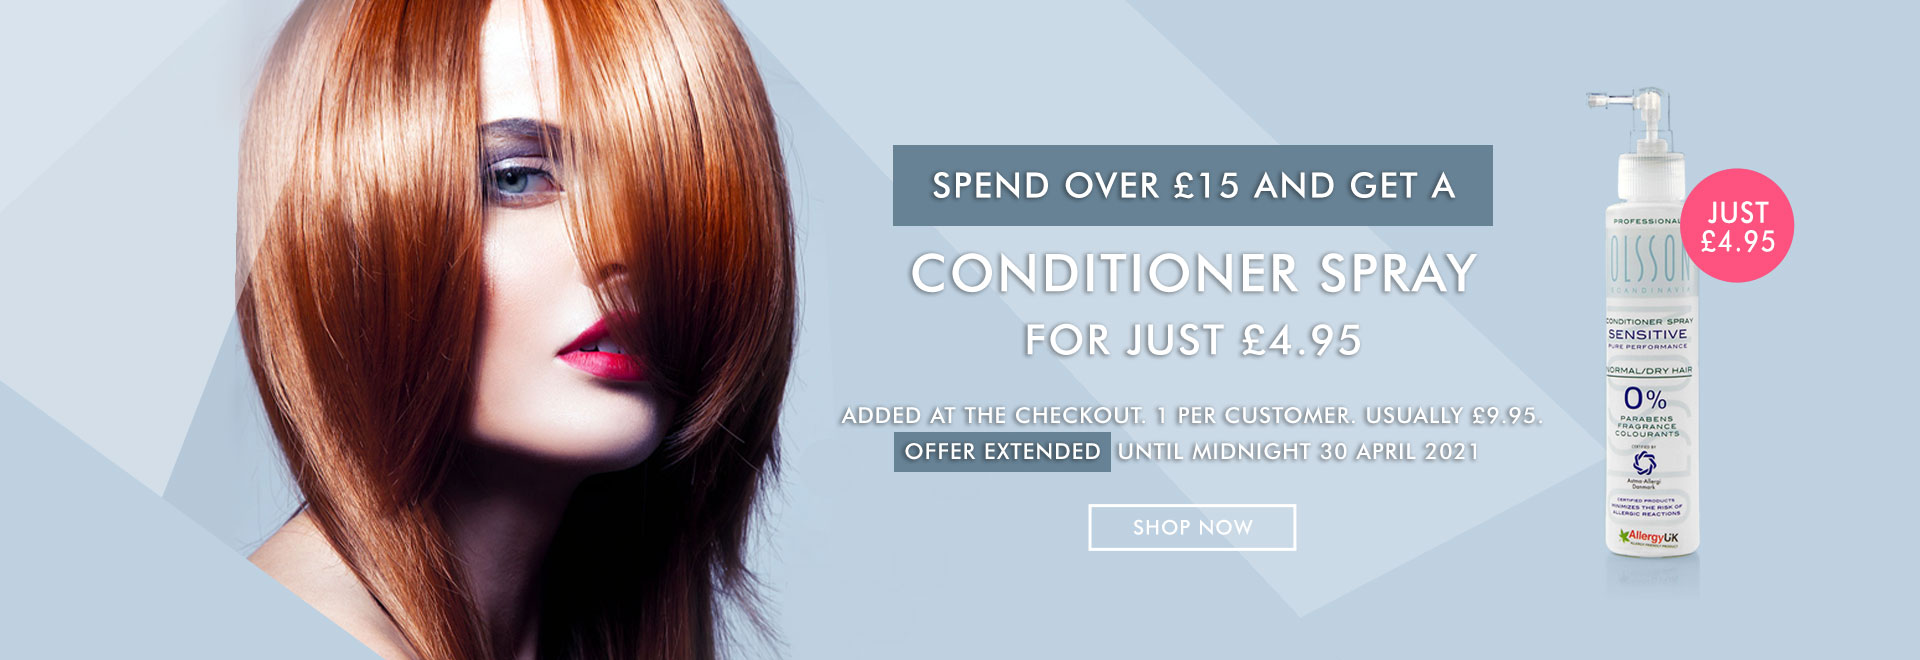 Free Delivery + Conditioner Spray for £5.95 on all orders.